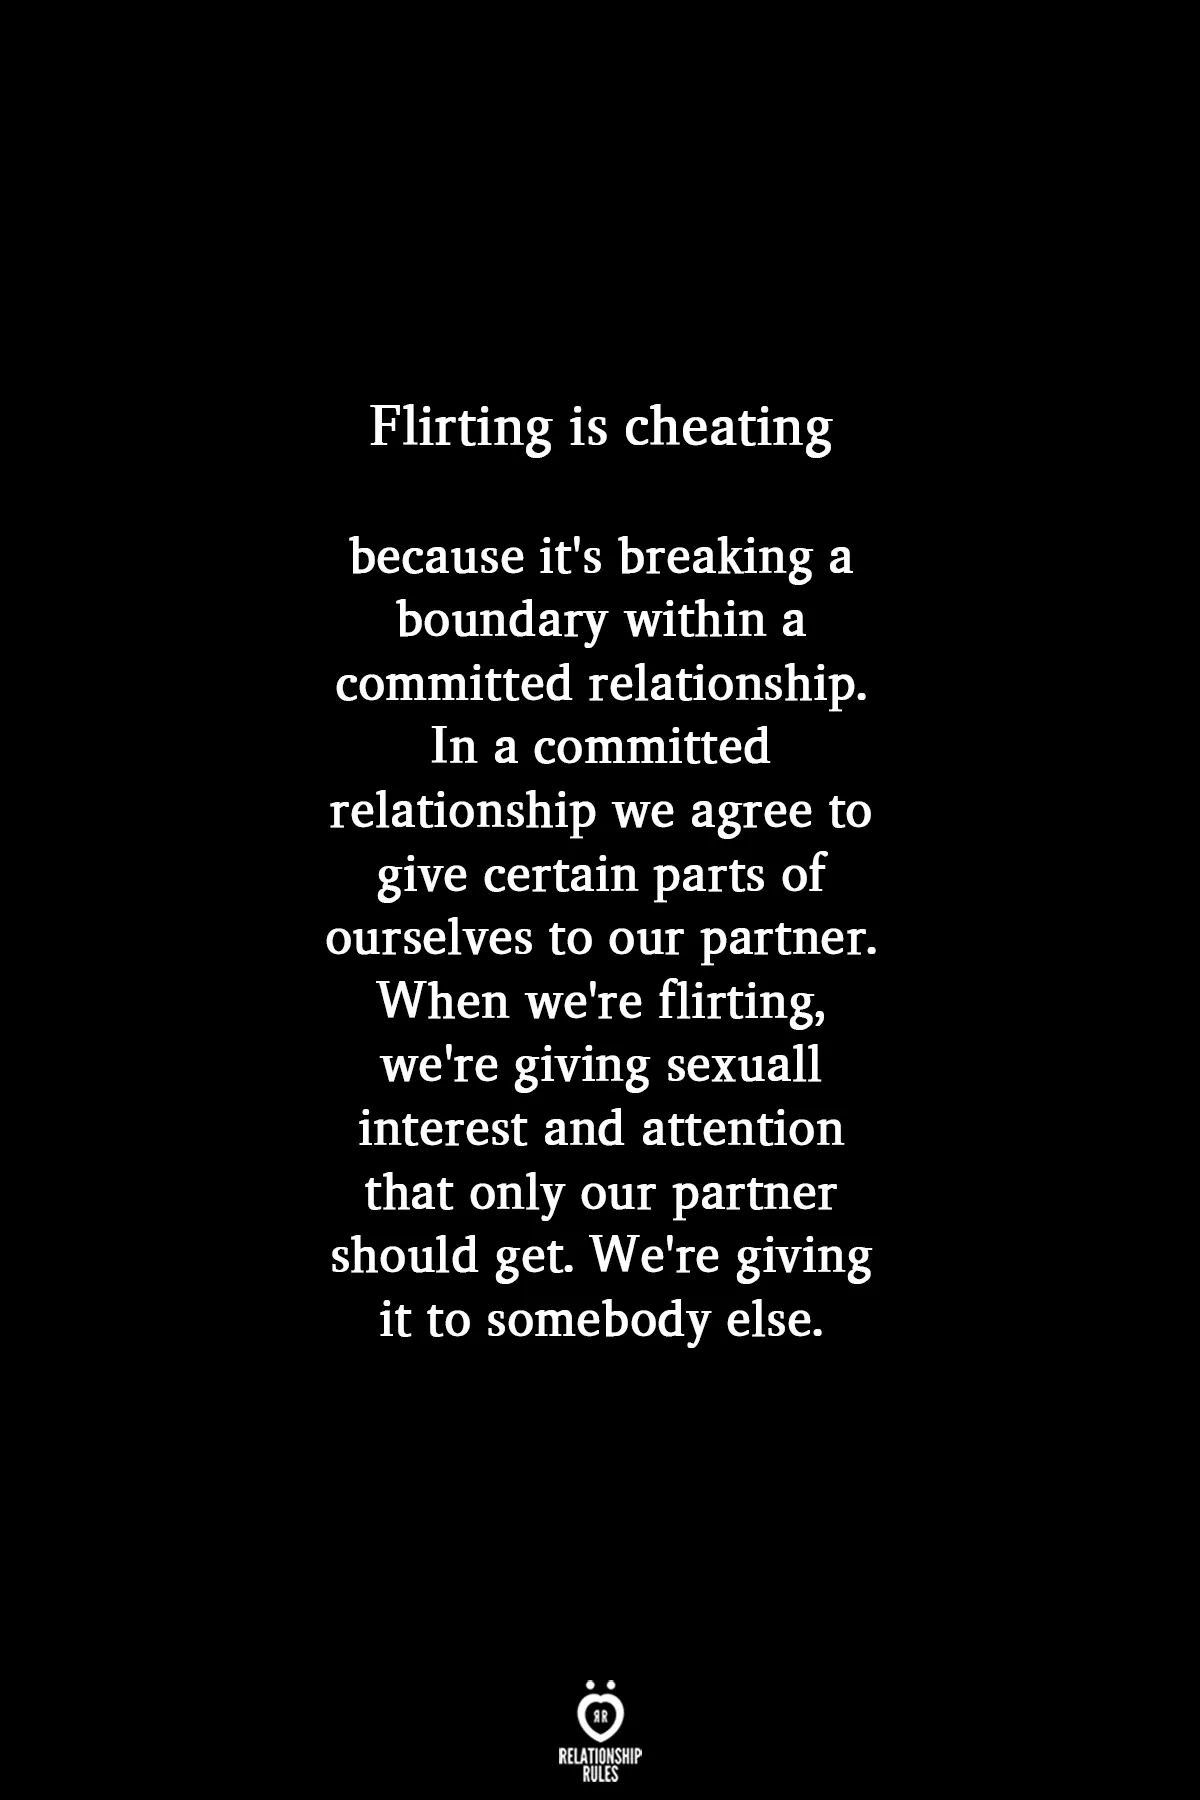 flirting vs cheating committed relationship images quotes love life